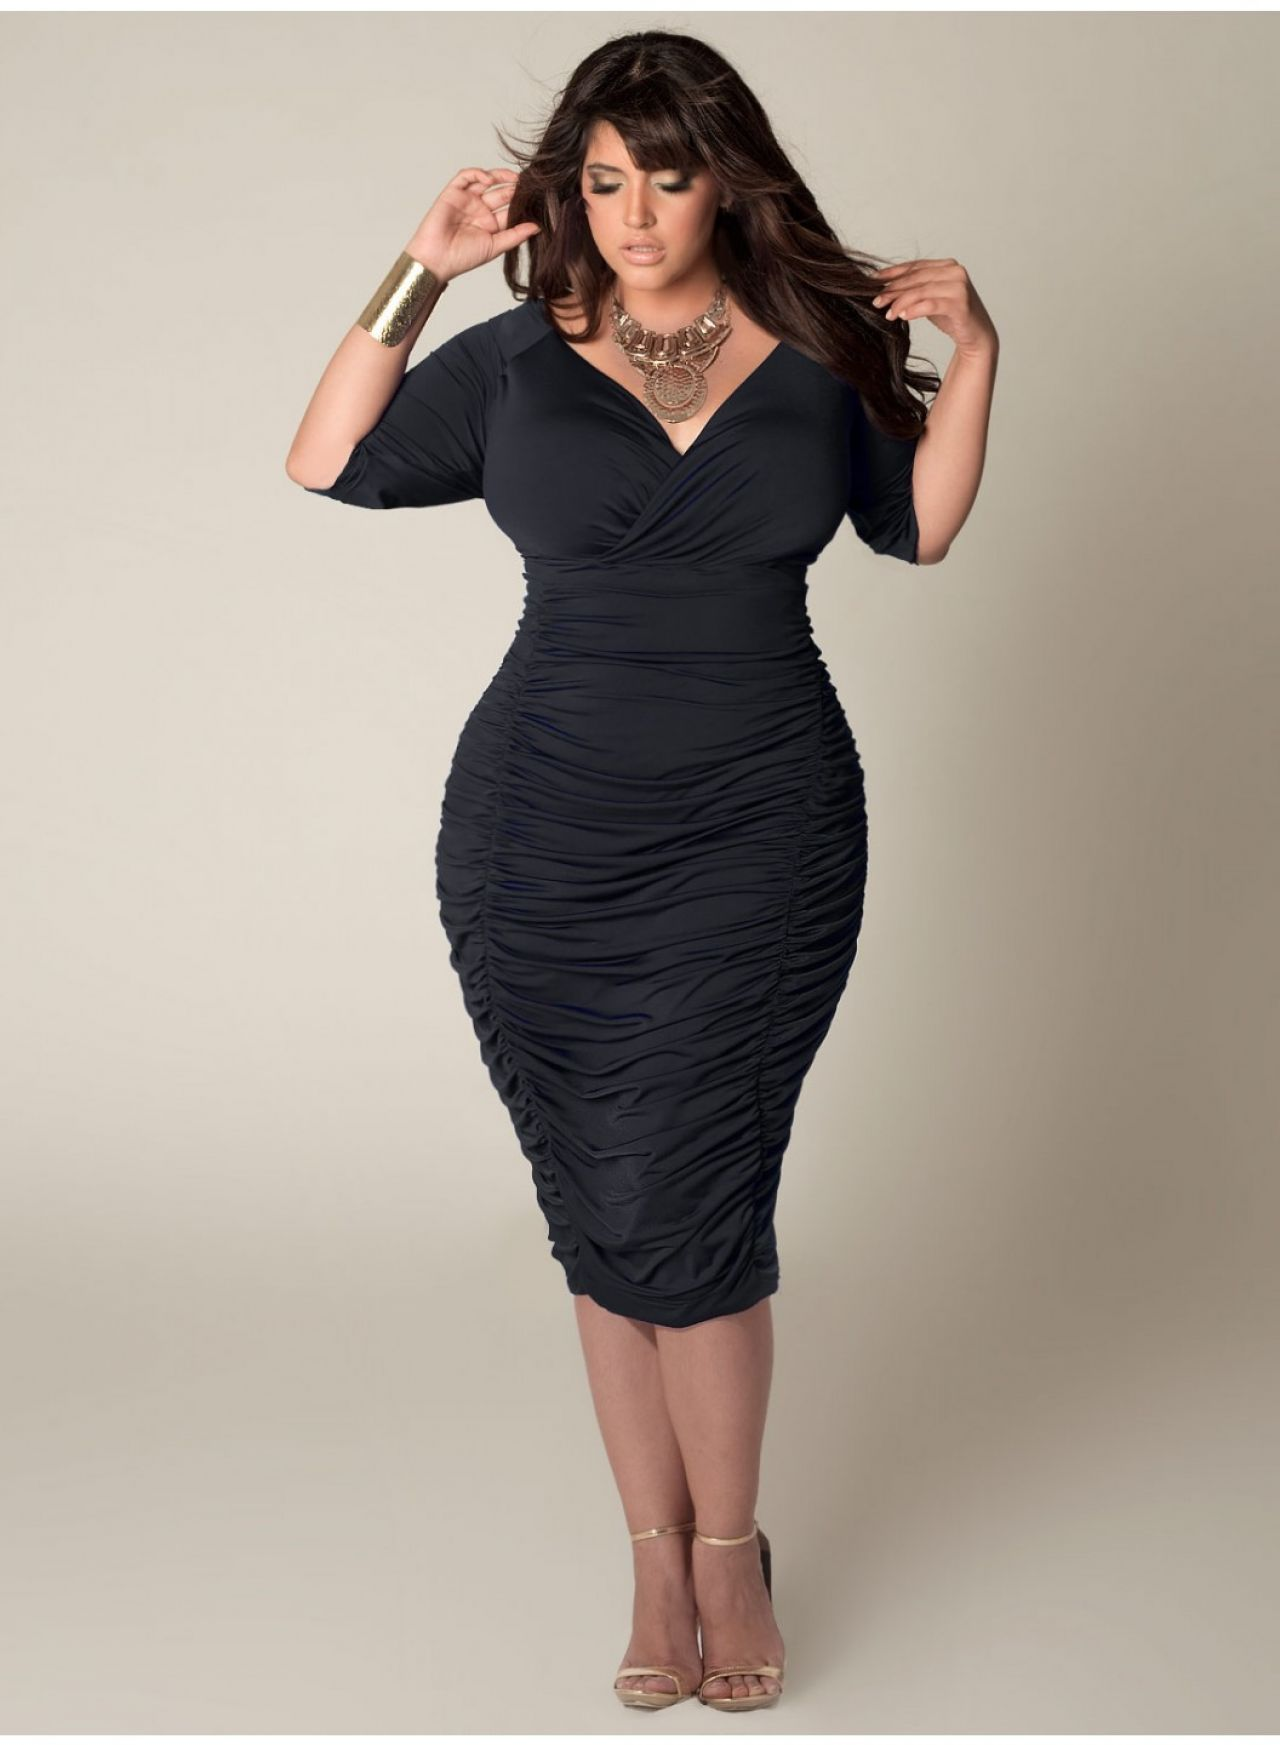 plus size guest of wedding dress fall dresses for wedding Plus size guest of wedding dress Plus Size Fall Wedding Dresses